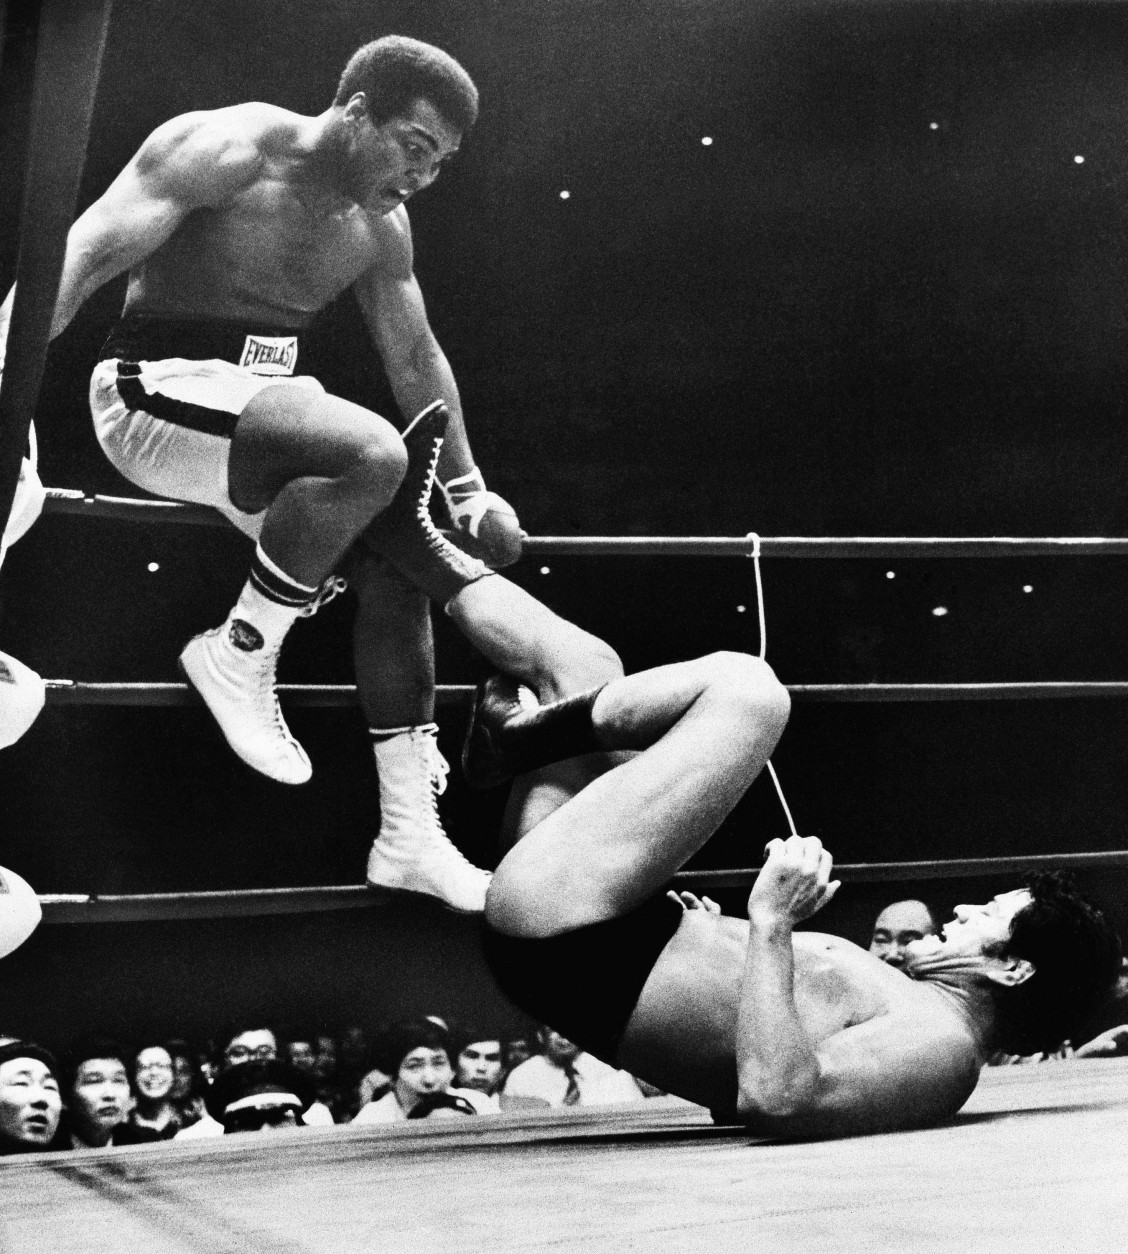 FILE - In this July 26, 1976, file photo, world heavyweight boxing champion Muhammad Ali is shown trying to evade kicks by wrestler Antonio Inoki during their 15-round World Martial Arts match, in Tokyo. The freak show Floyd Mayweather Jr. and Connor McGregor are talking about probably won't happen, though stranger things have happened. (AP Photo/File)